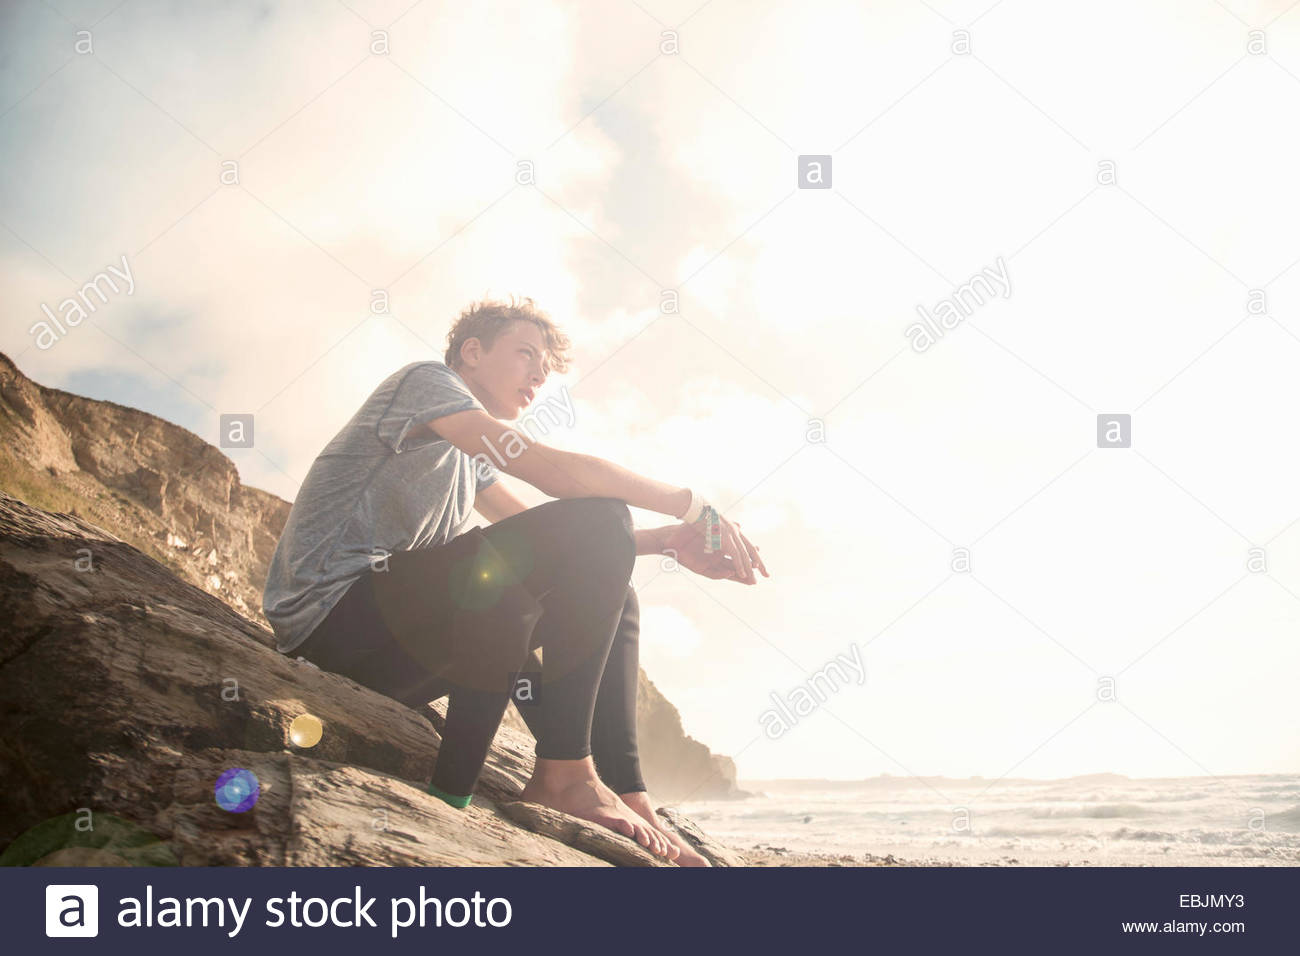 Teenage boy sitting on rocks - Stock Image